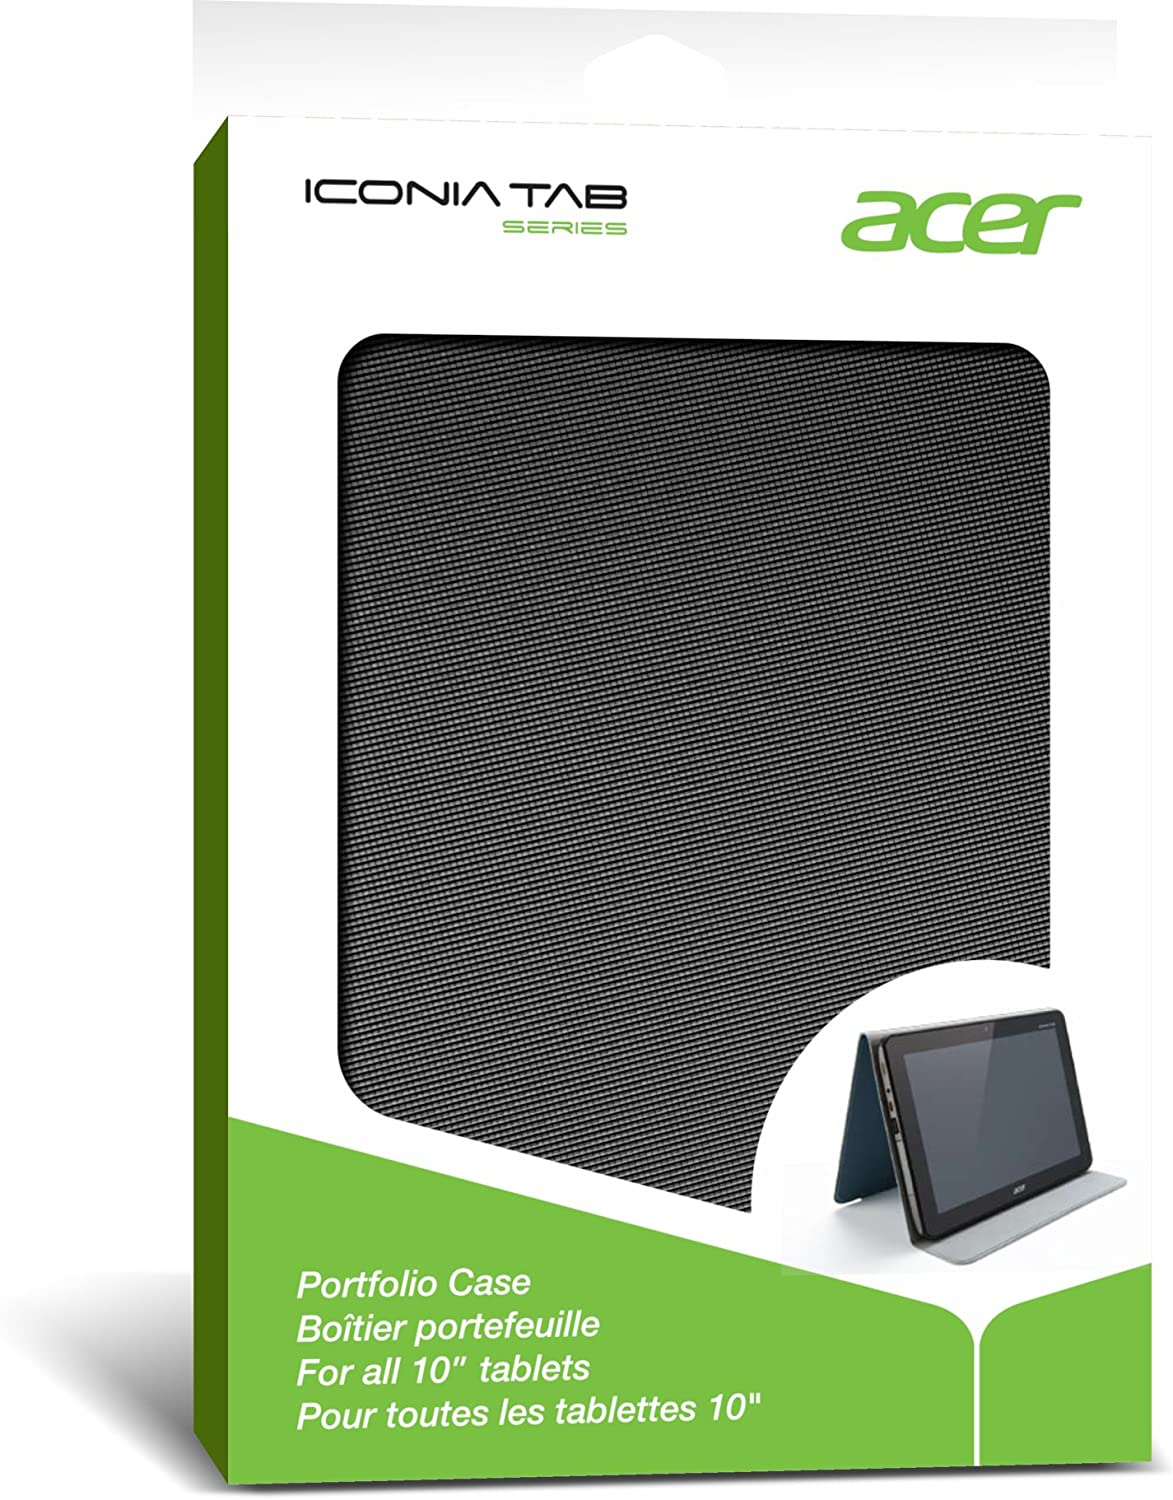 Acer Iconia 10-Inch Tablet Foldable Protective Portfolio Case